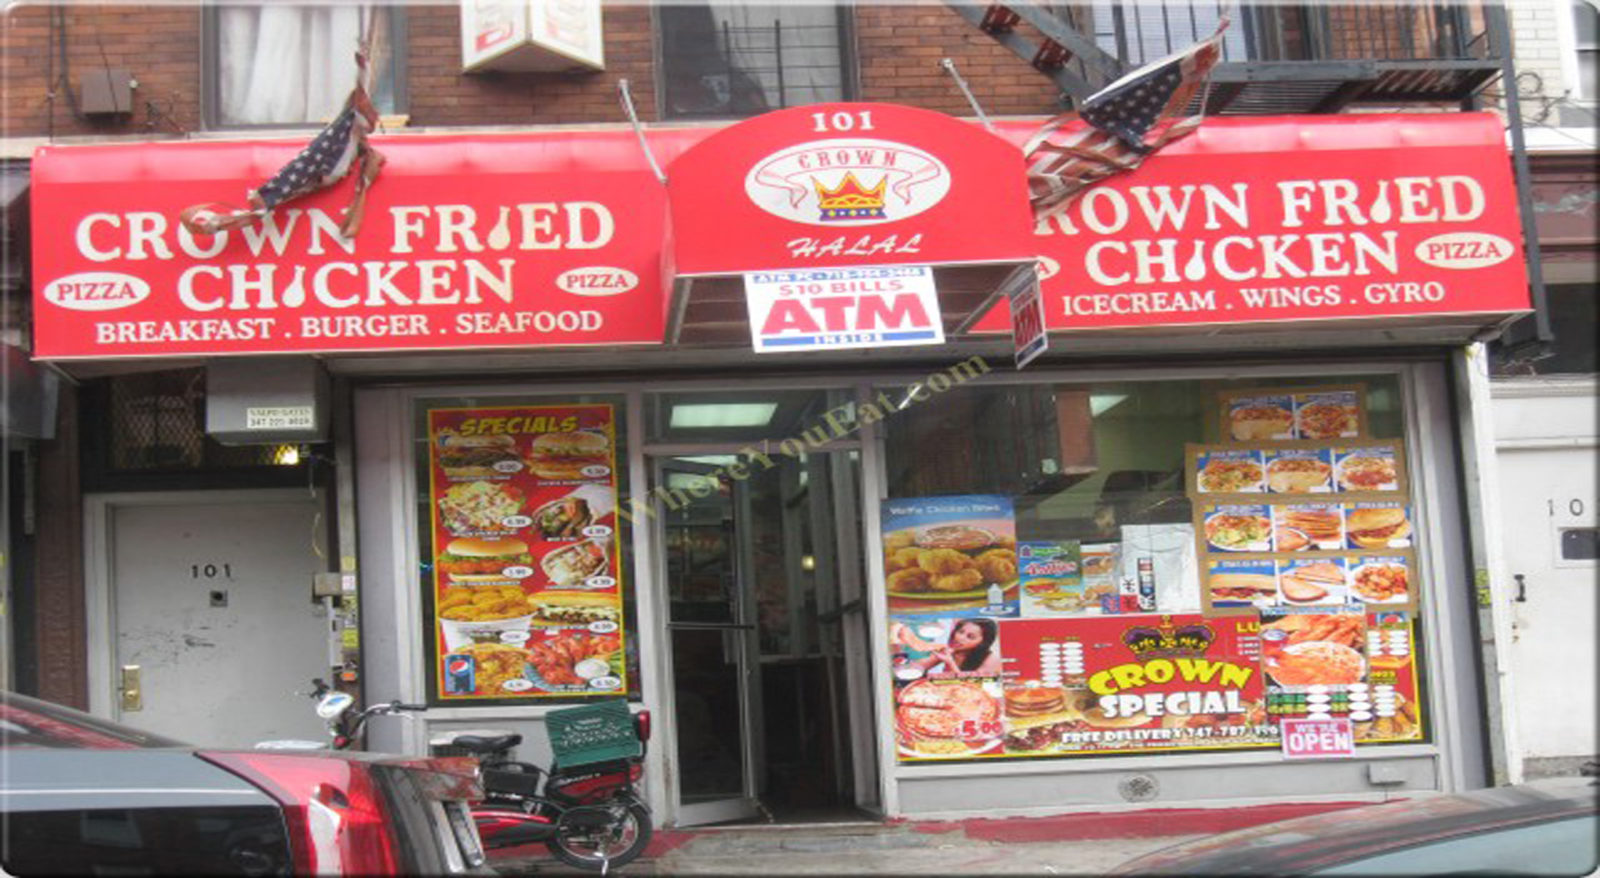 Good Pizza Places Near Me: Crown Fried Chicken 456 Sutter Ave Brooklyn NY 11212